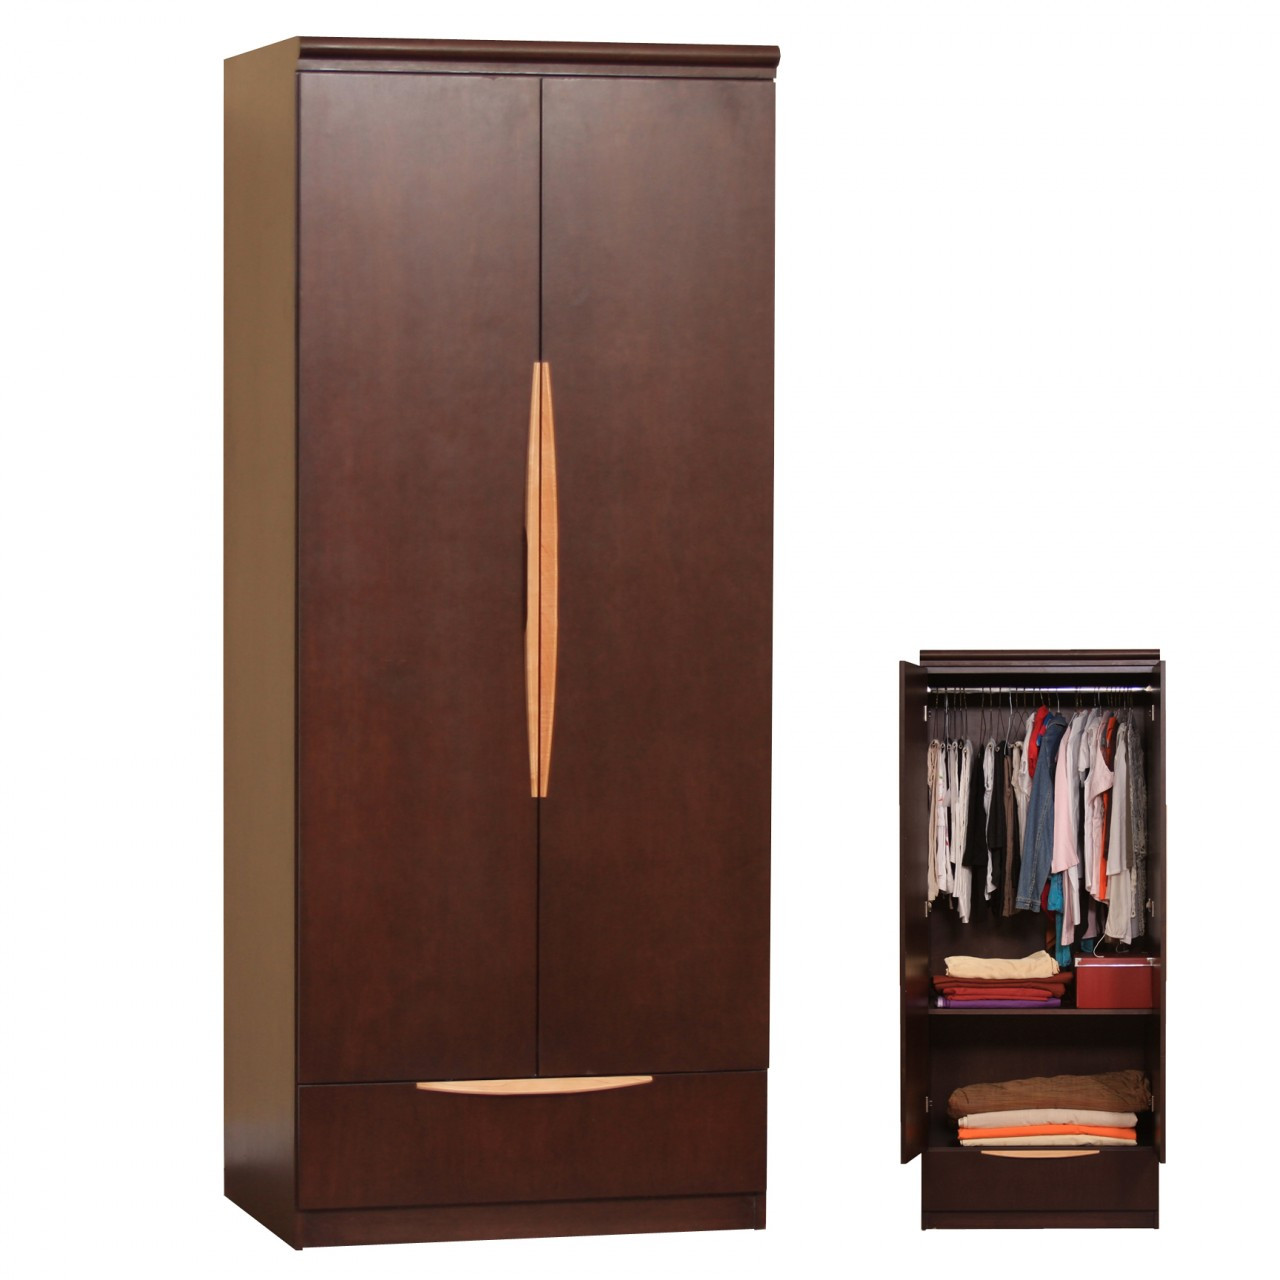 org laundry of closet cabinets rod shelf room cavalcades hanging best with shelves